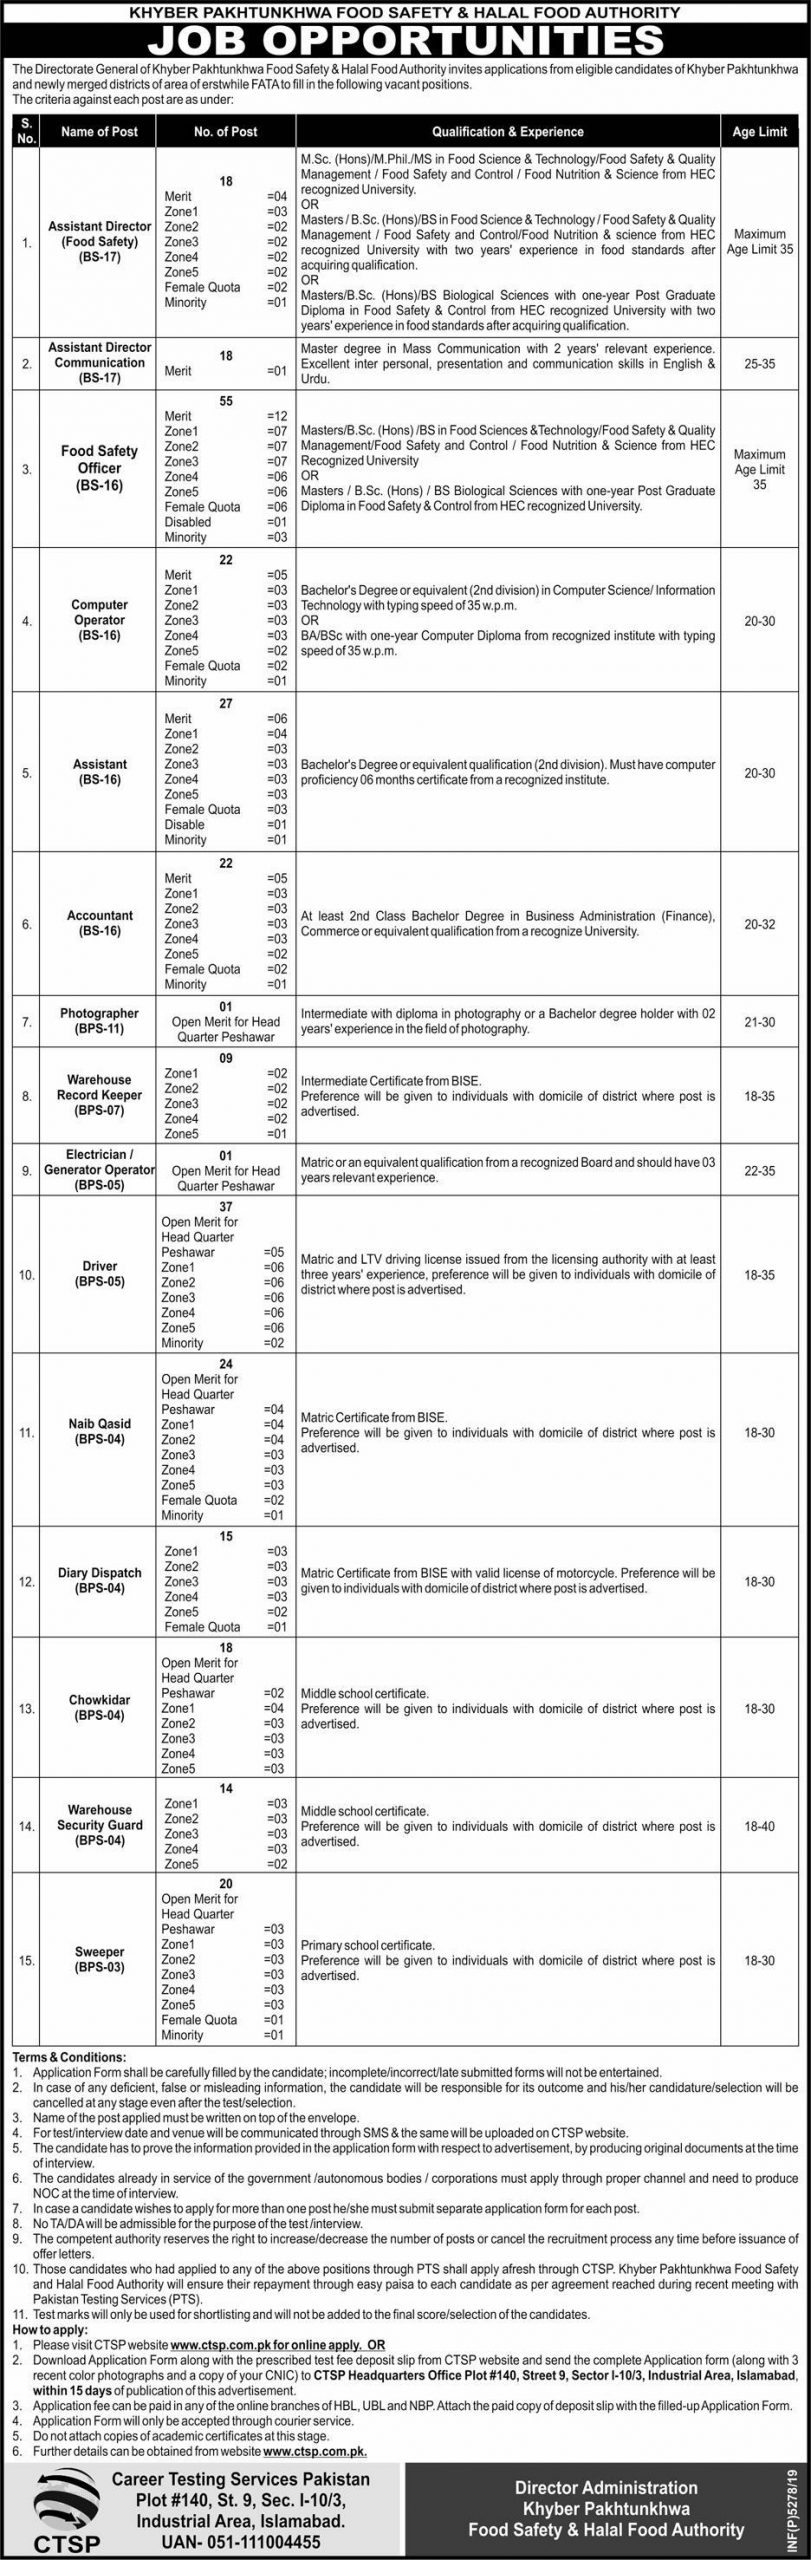 KPK Food Safety Halal Food Authority Jobs CTSP Roll Number Slip